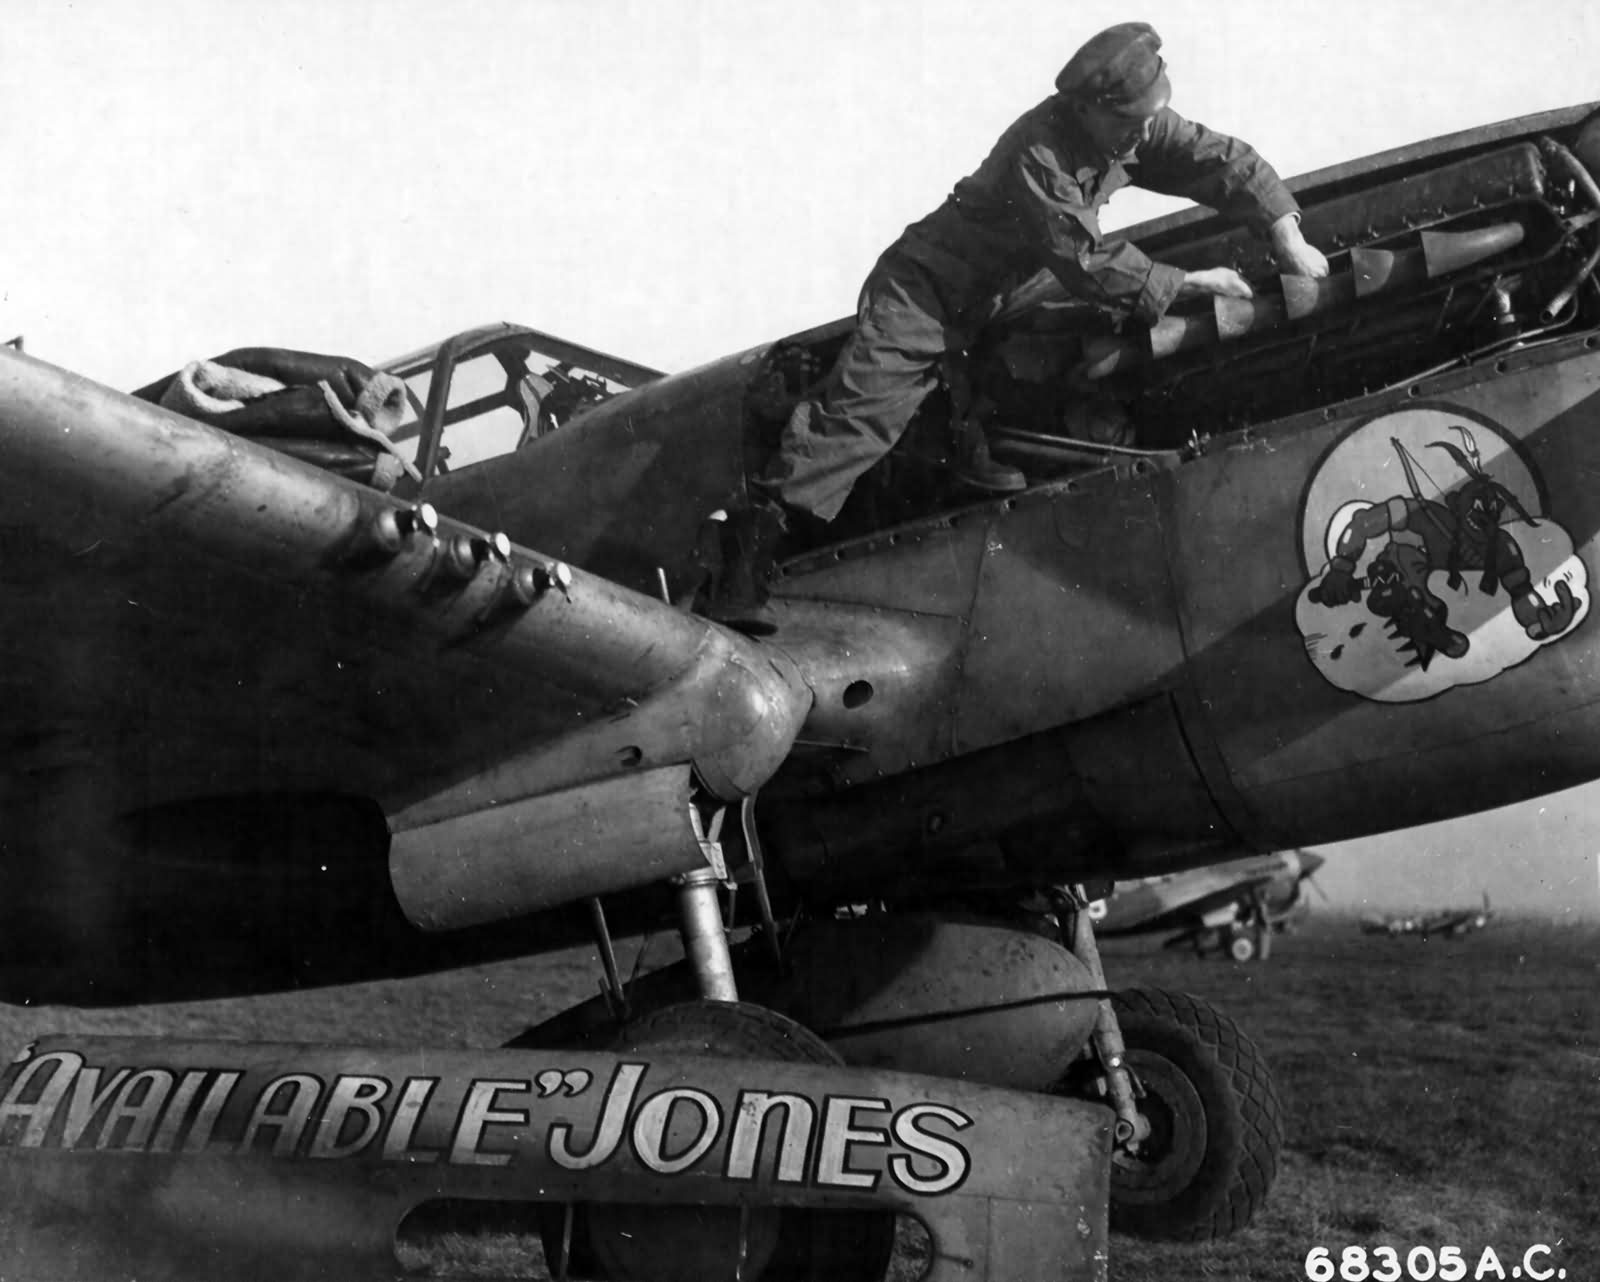 P-40_Warhawk_Available_Jones_Of_The_79th